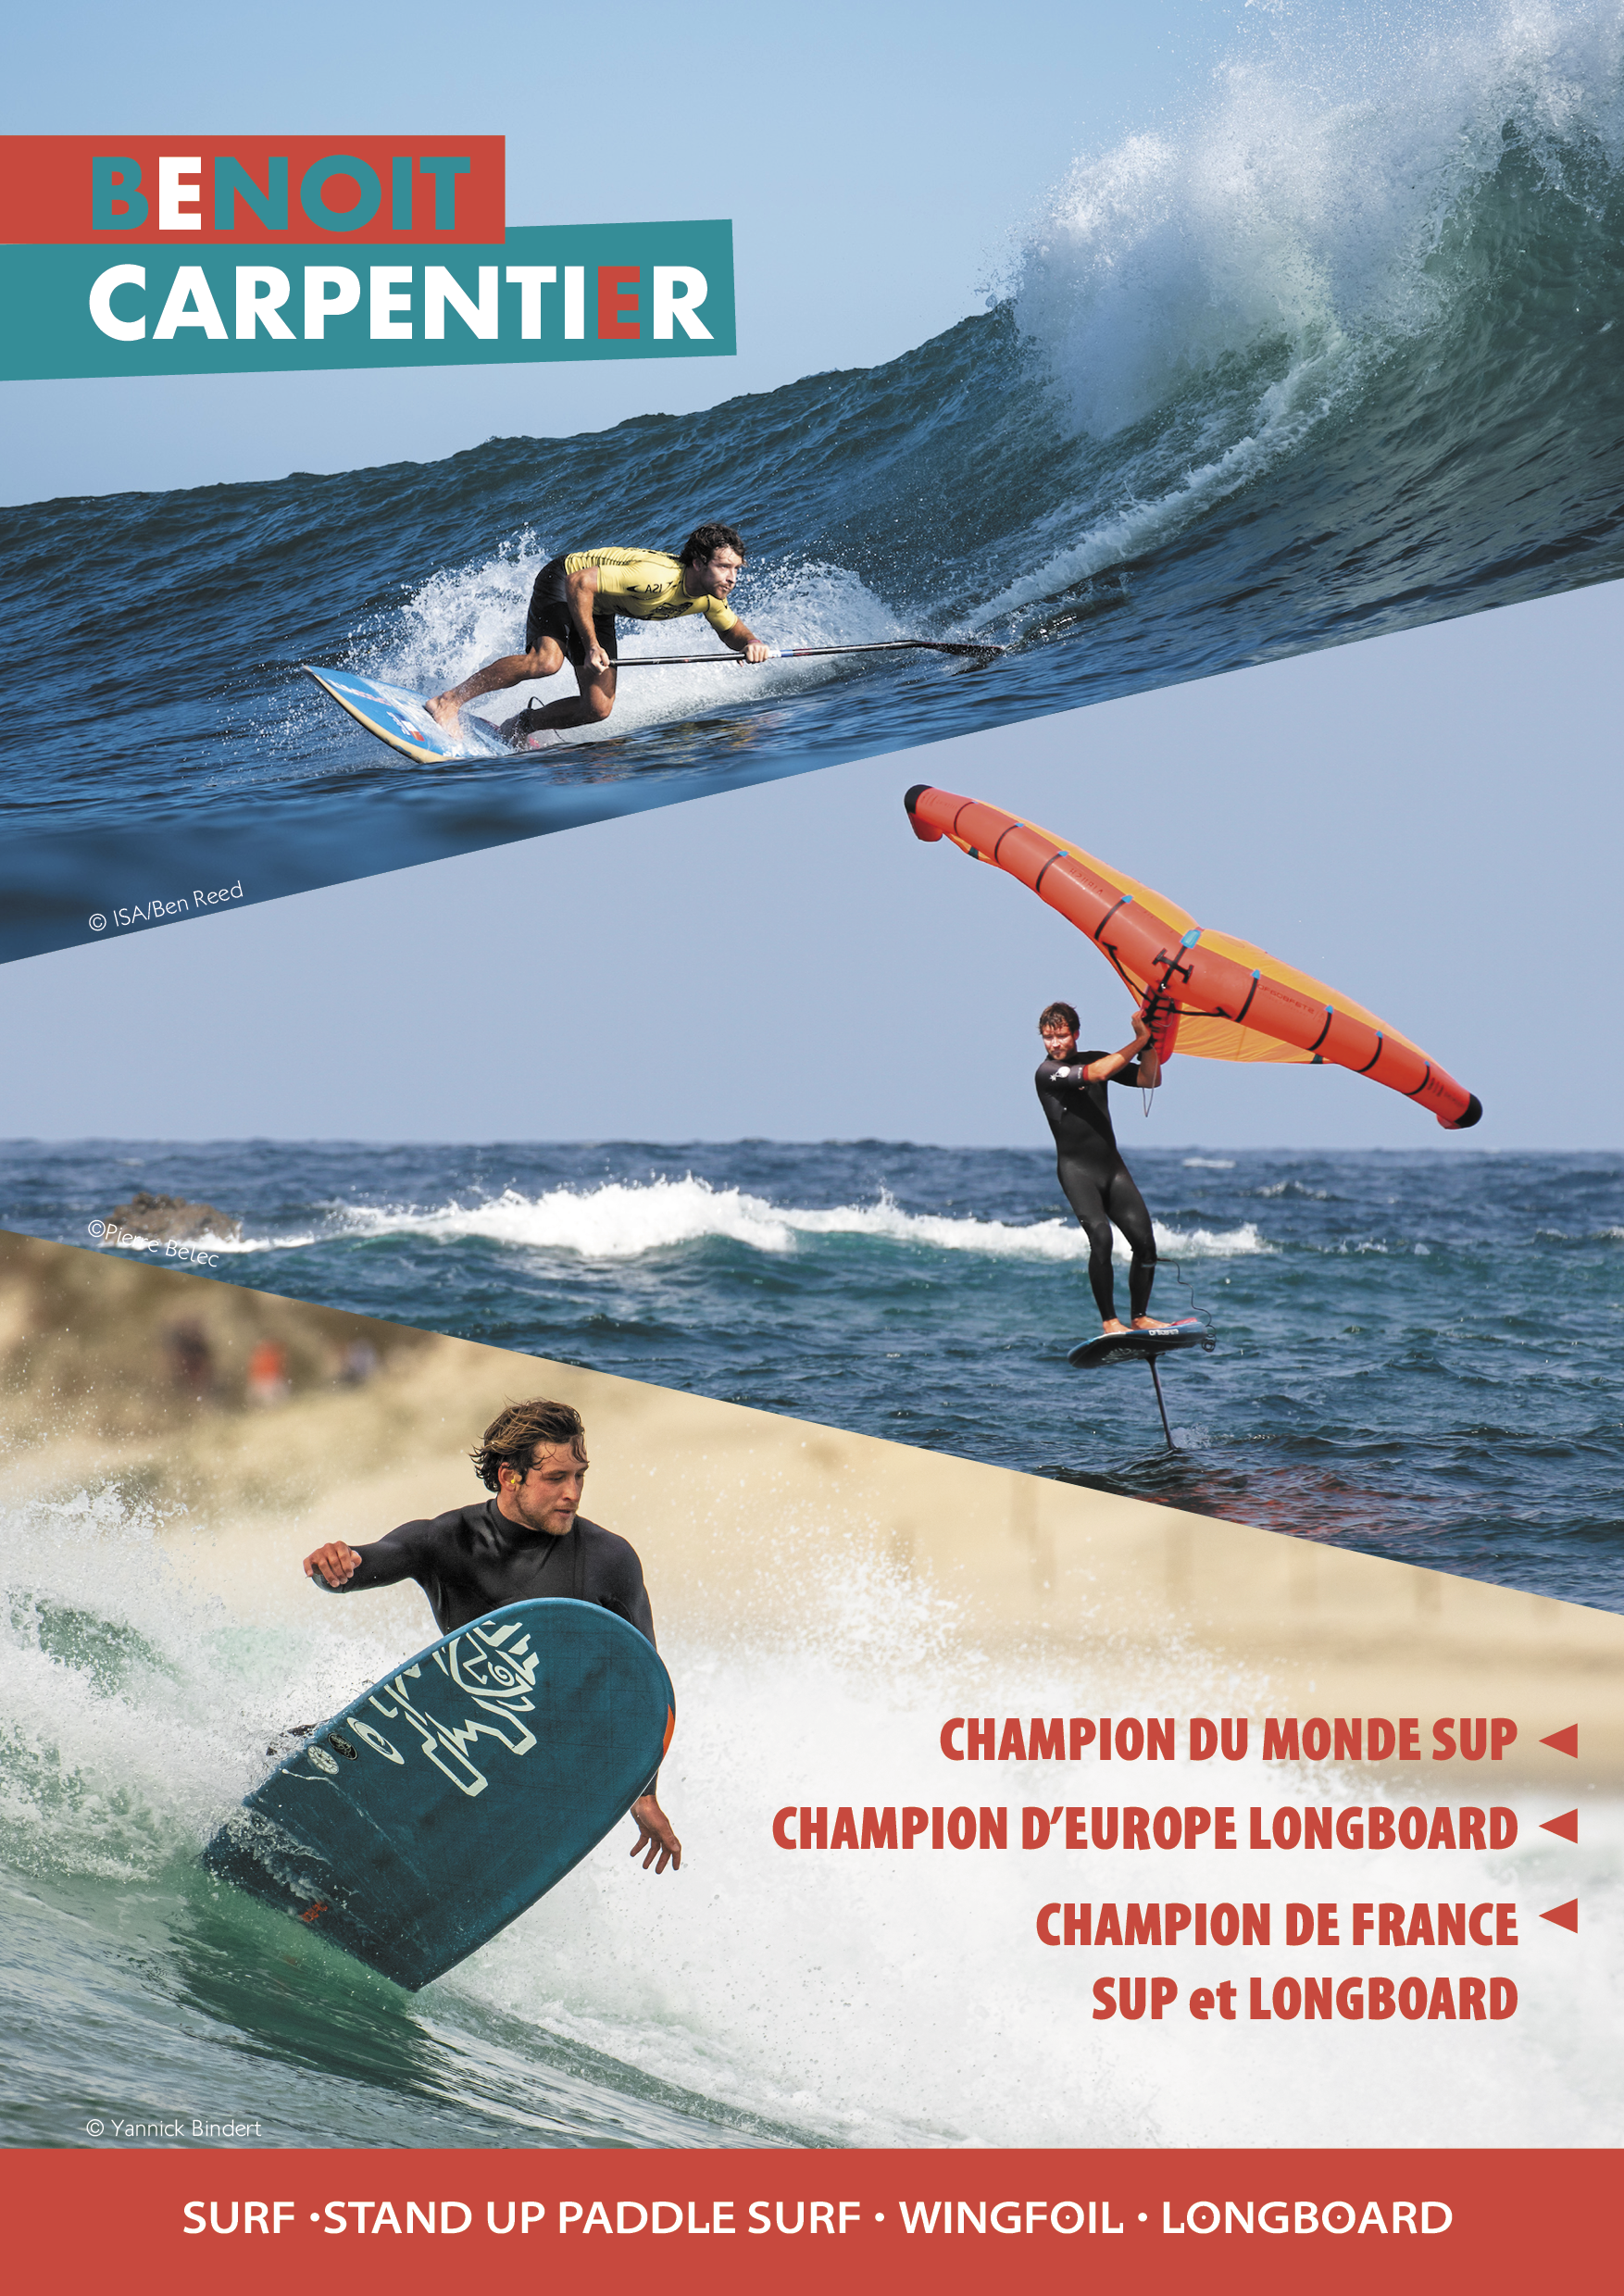 Book-Benoit-Carpentier-SUP-Longboard-Wing-Foil-2021-by-TIKIÔ